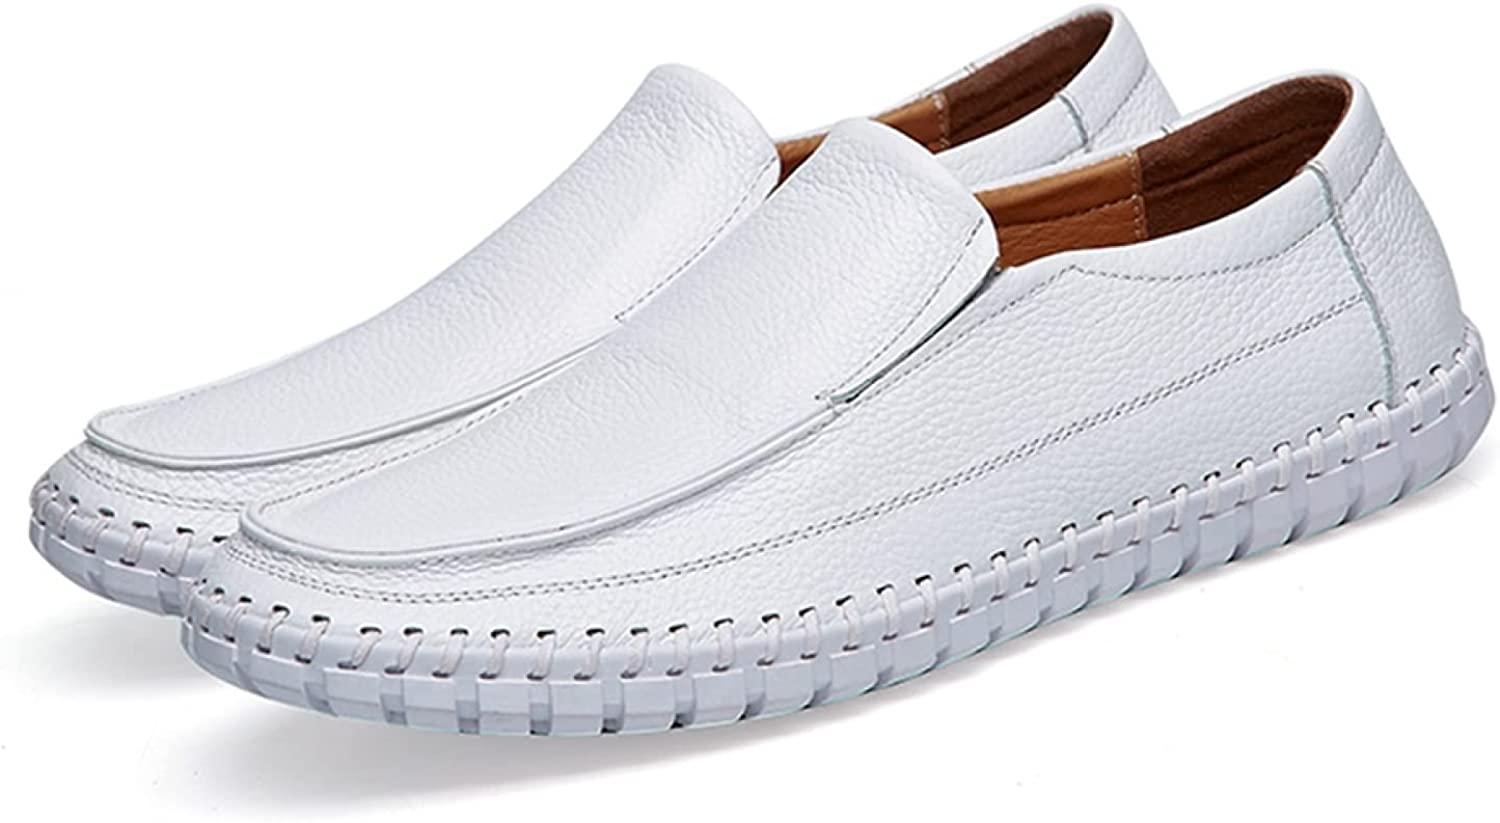 Generic4 Men Leather Loafers Breathable Lightweight Solid Color Round Toe Flat Moccasins Male Comfort Driving Walking Casual Shoes White